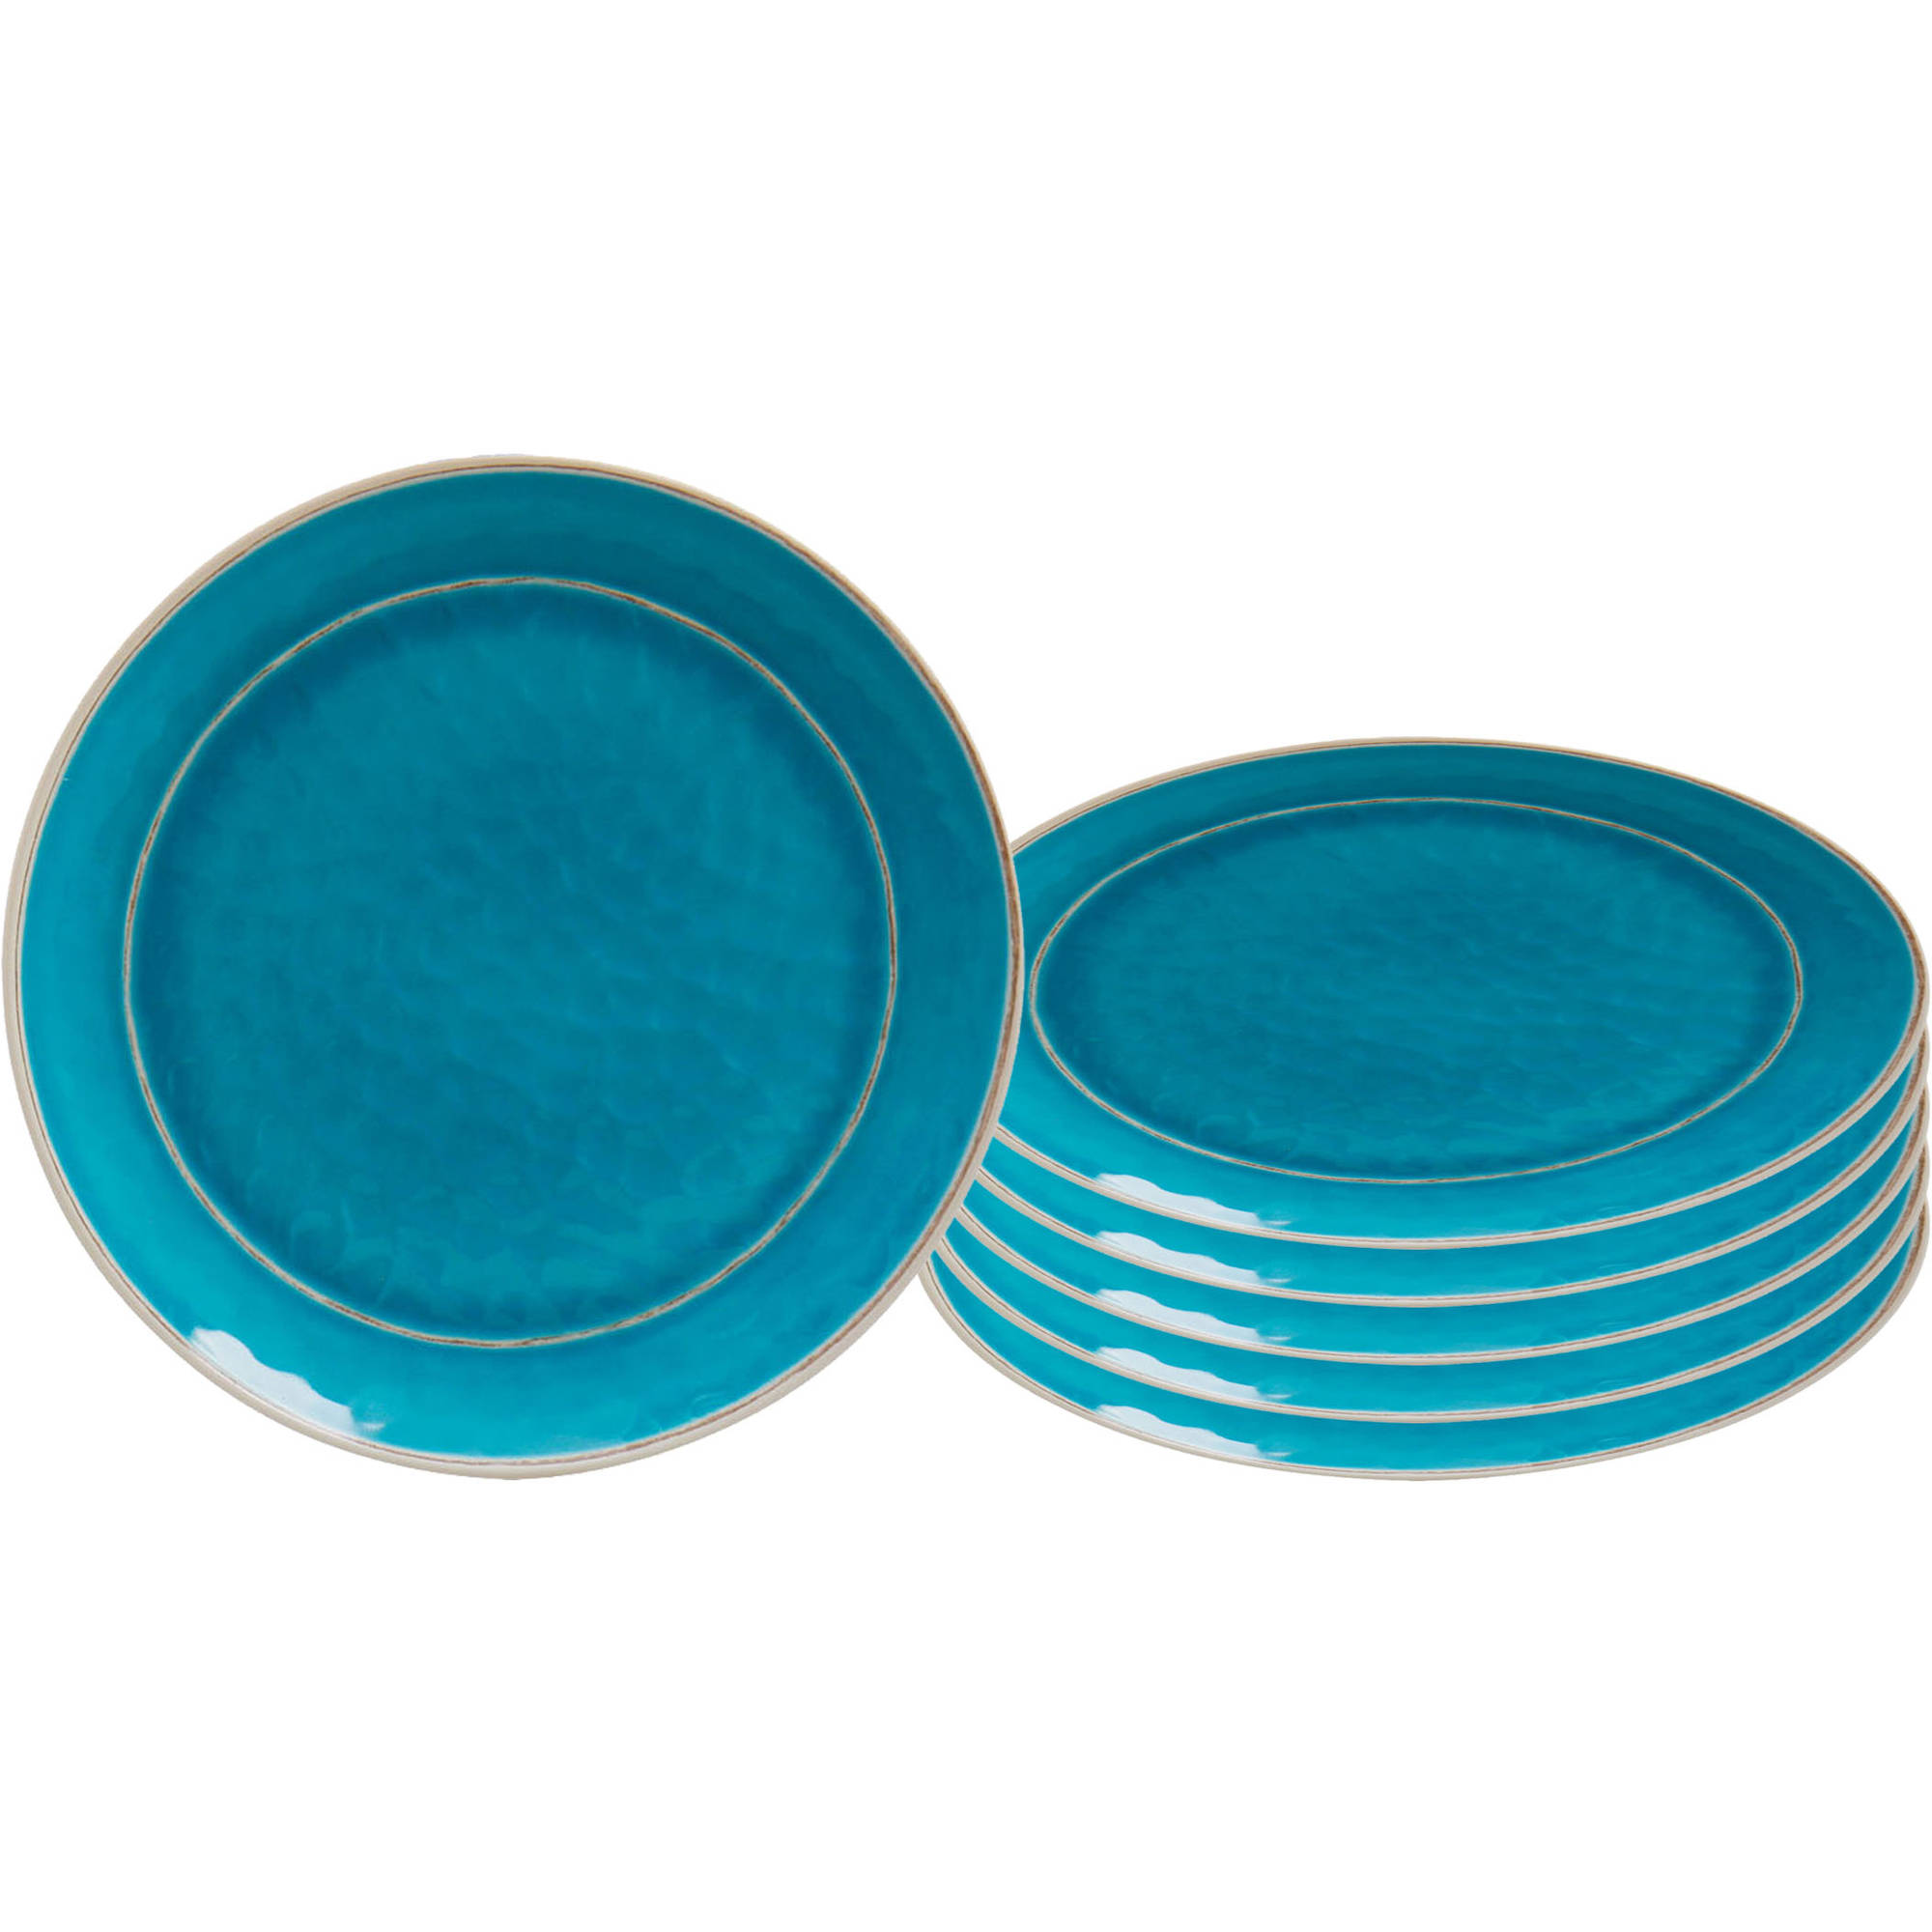 Better Homes and Gardens Textured Dinner Plate, Set of 6, Melamine